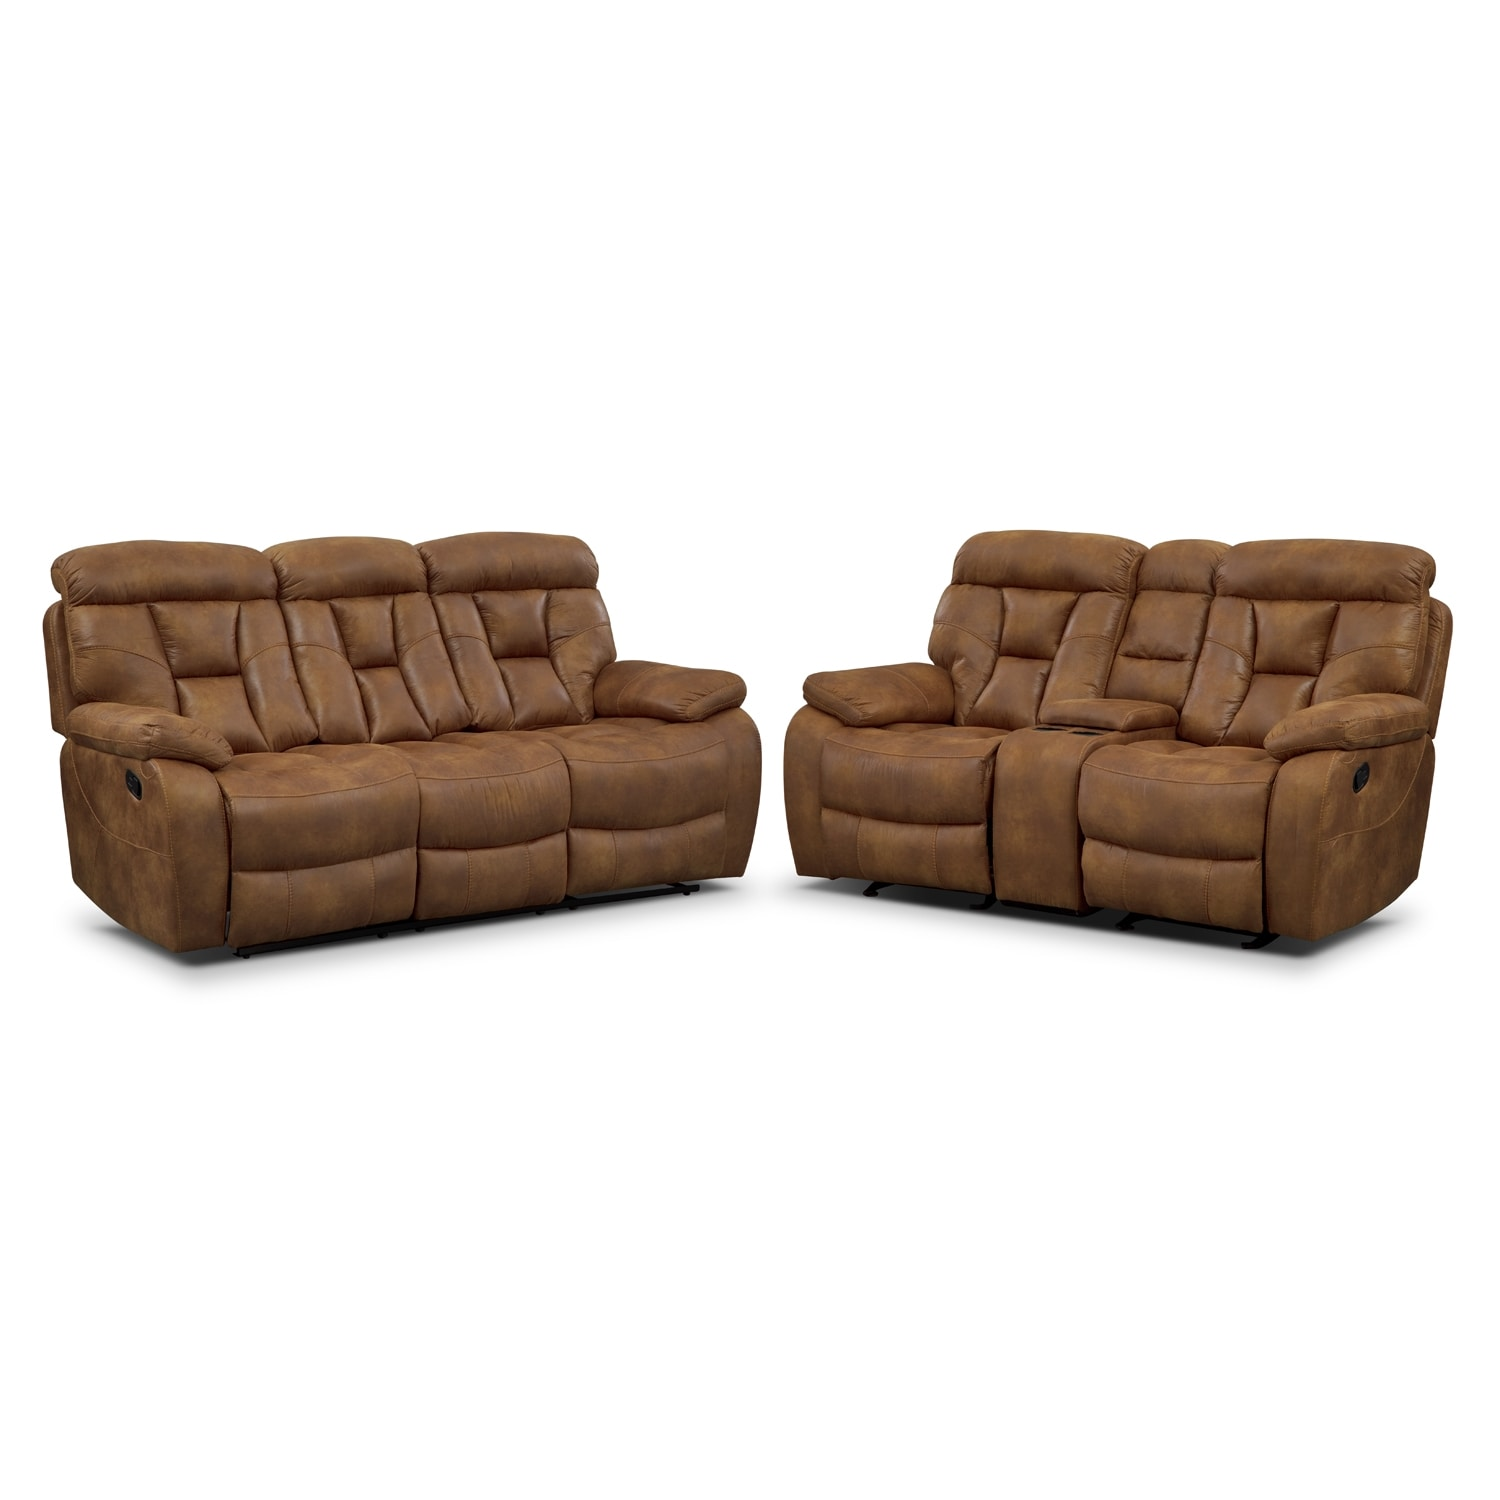 Dakota Reclining Sofa And Glider Loveseat Set Almond